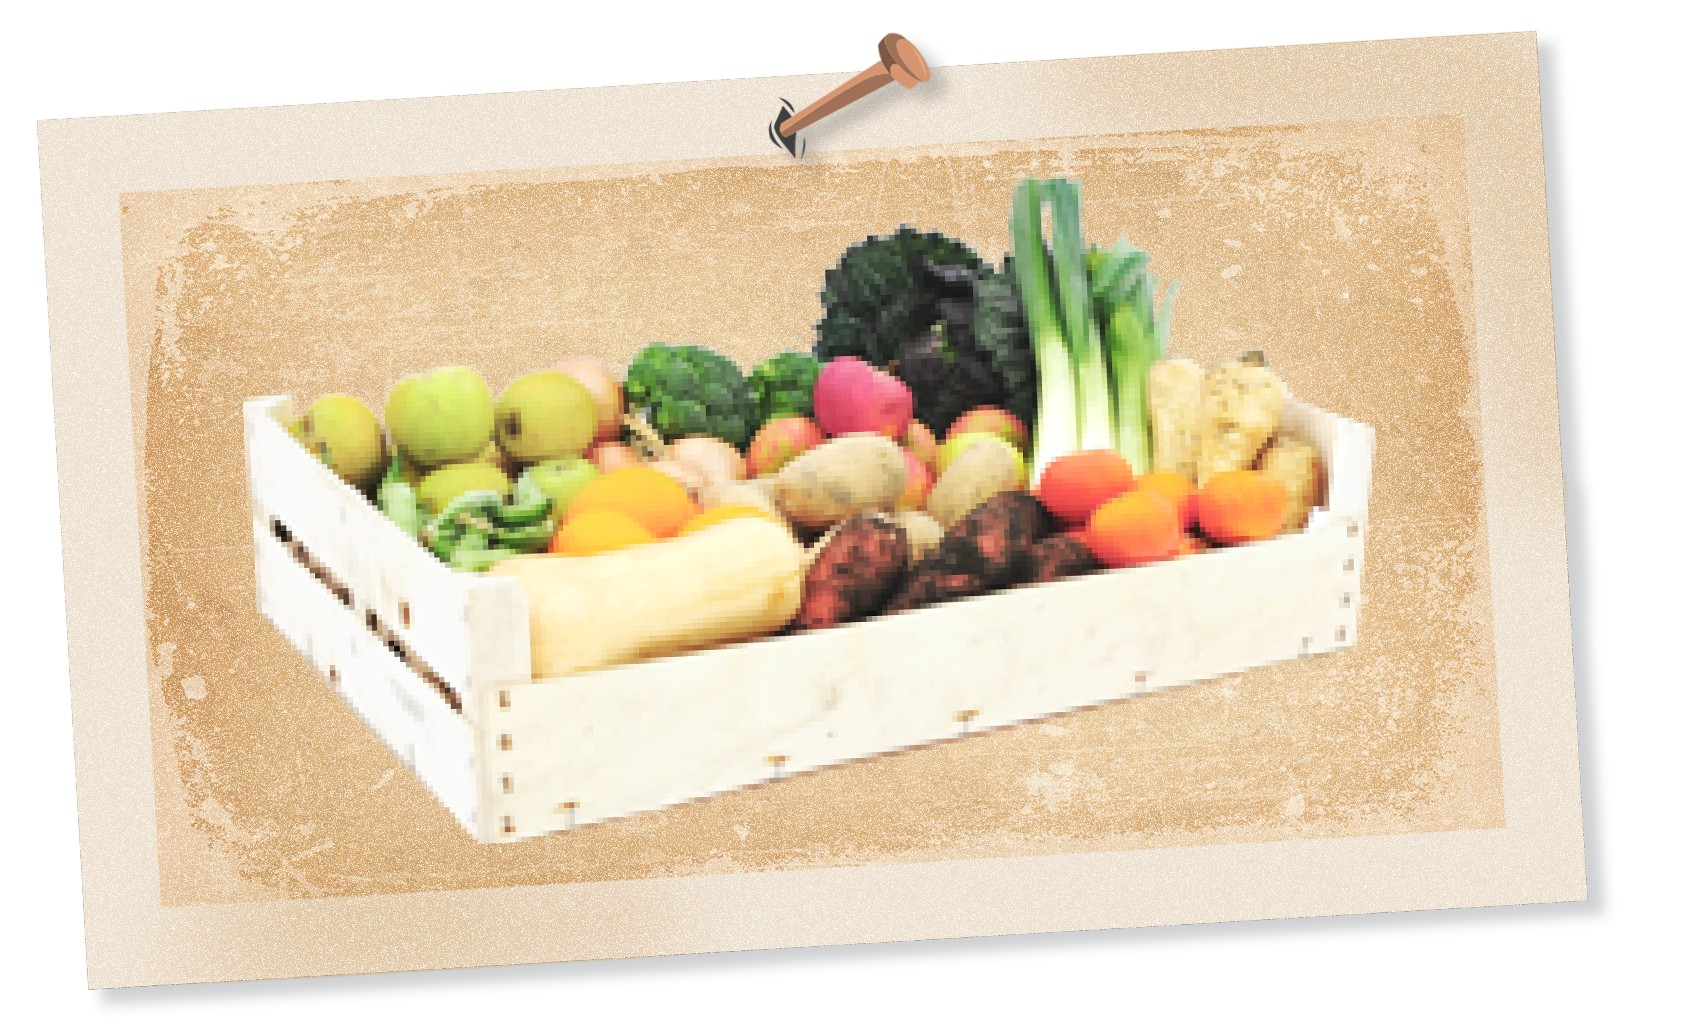 veg-fruit-mix-box.jpg